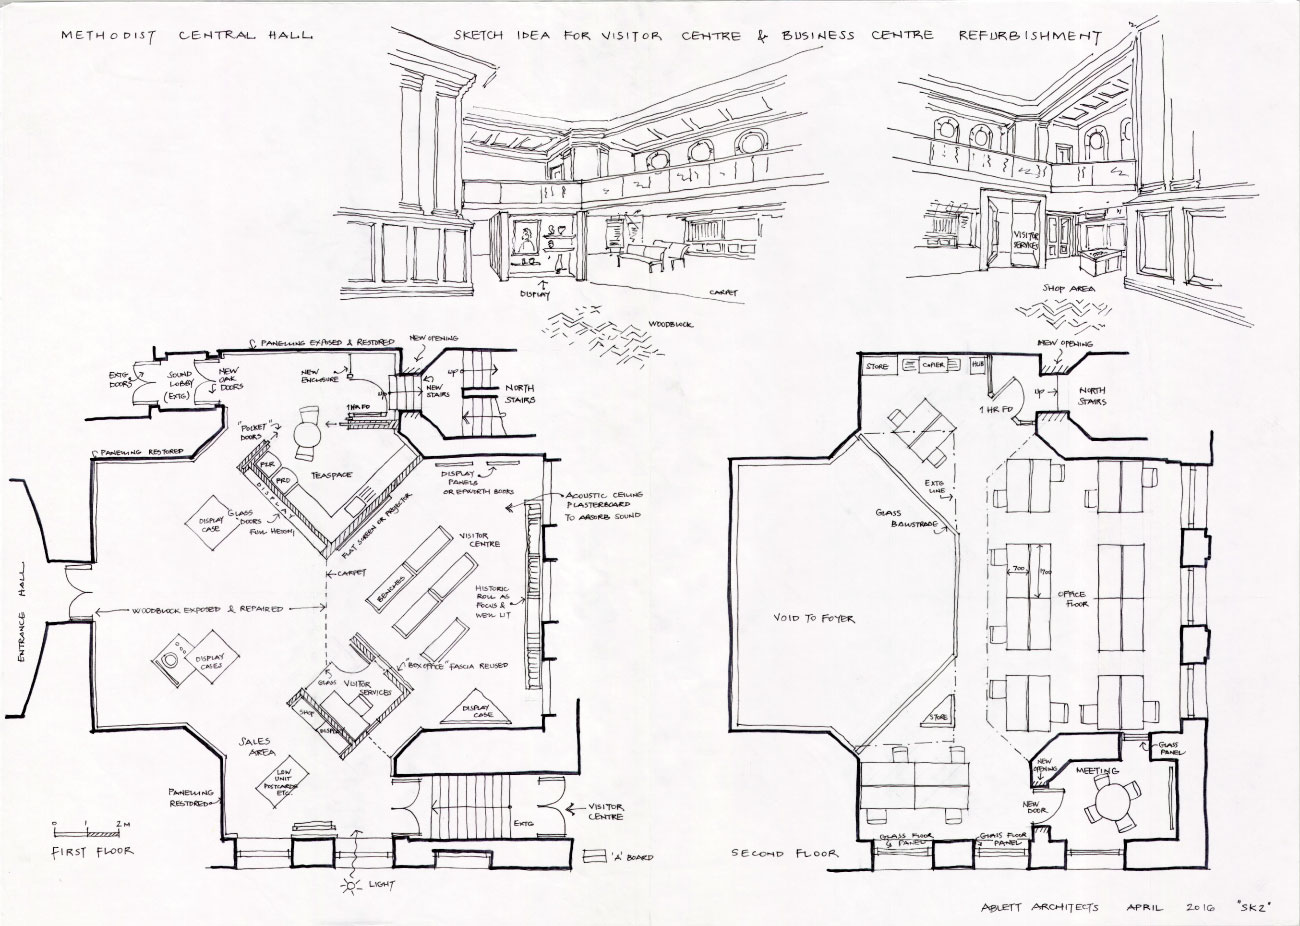 methodist-central-hall-plans